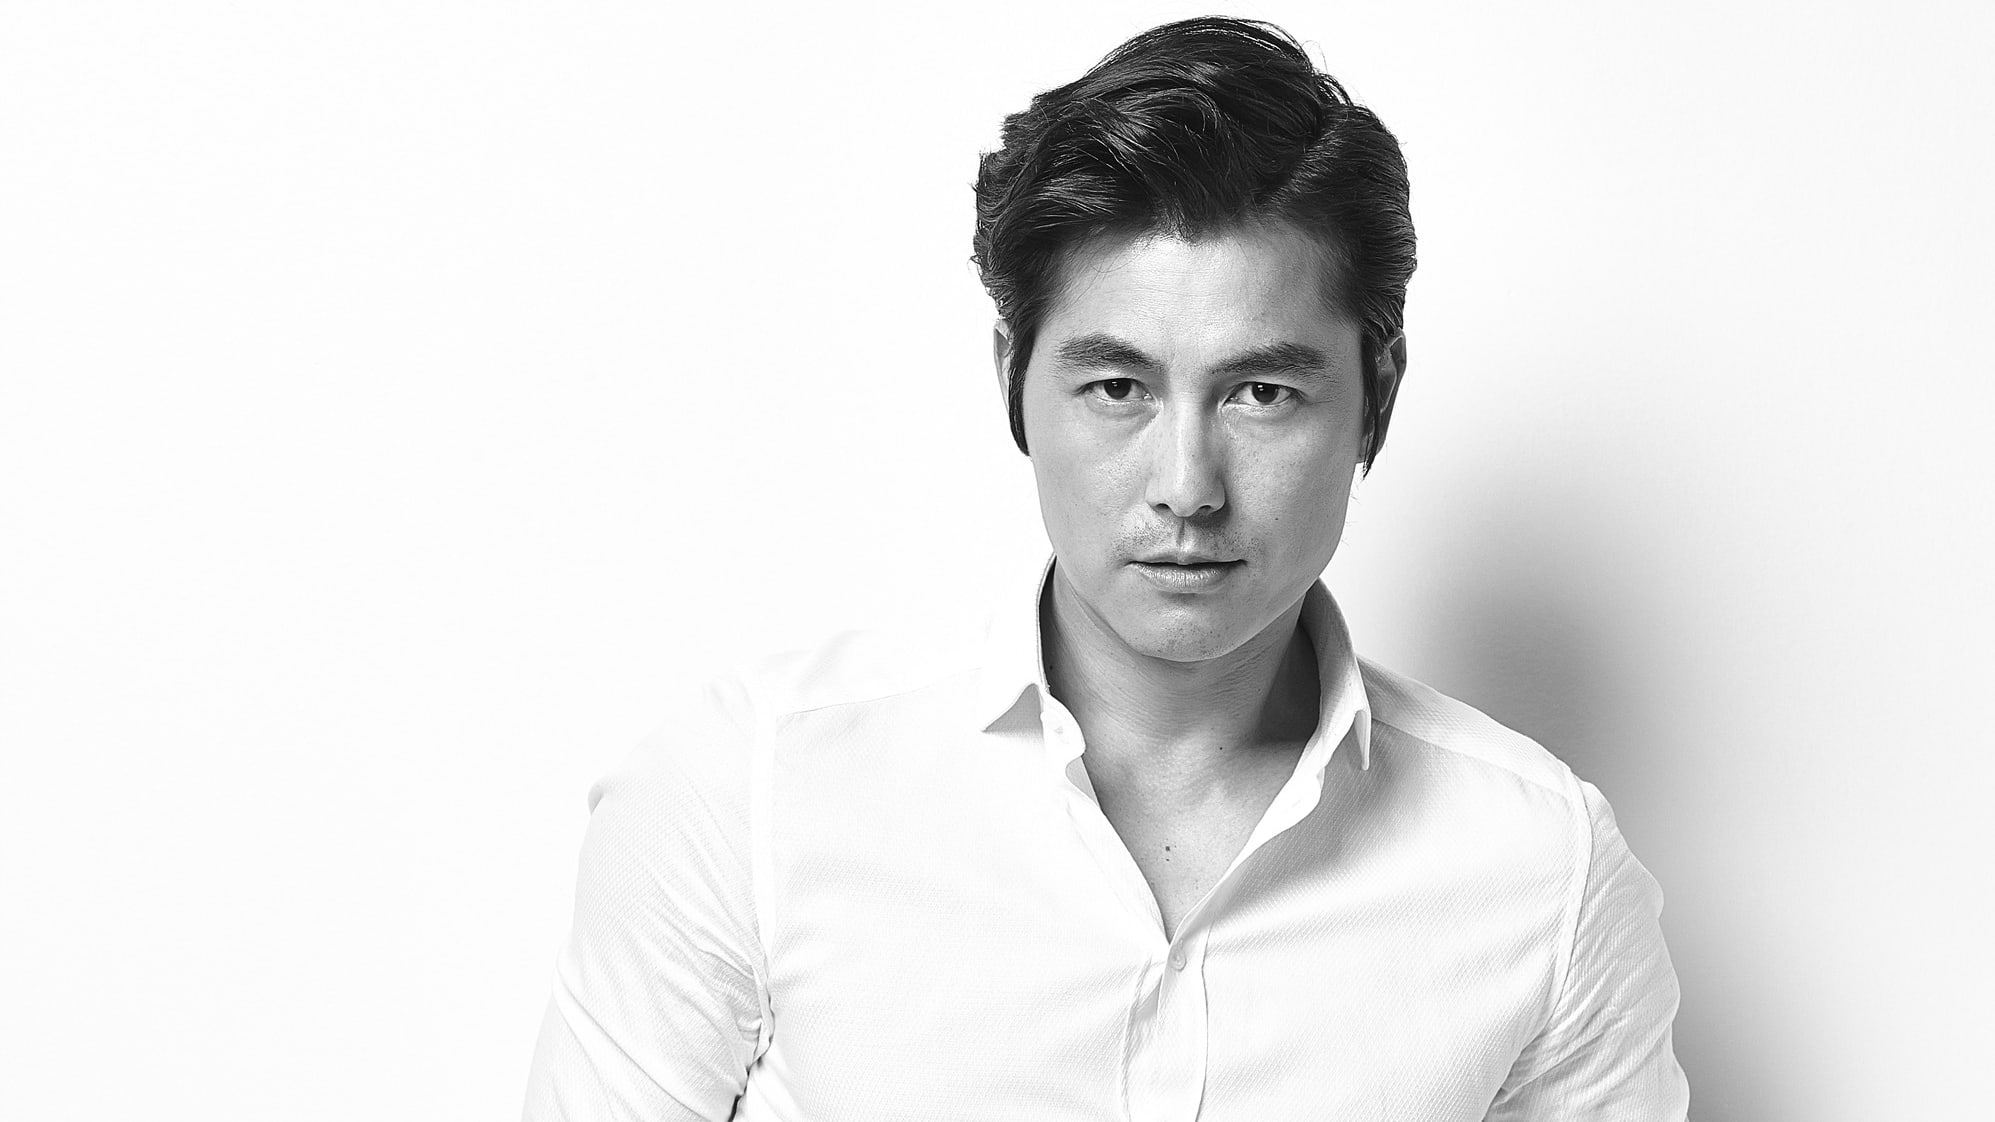 Jung Woo Sung Shows Support For Plight Of Syrian Children